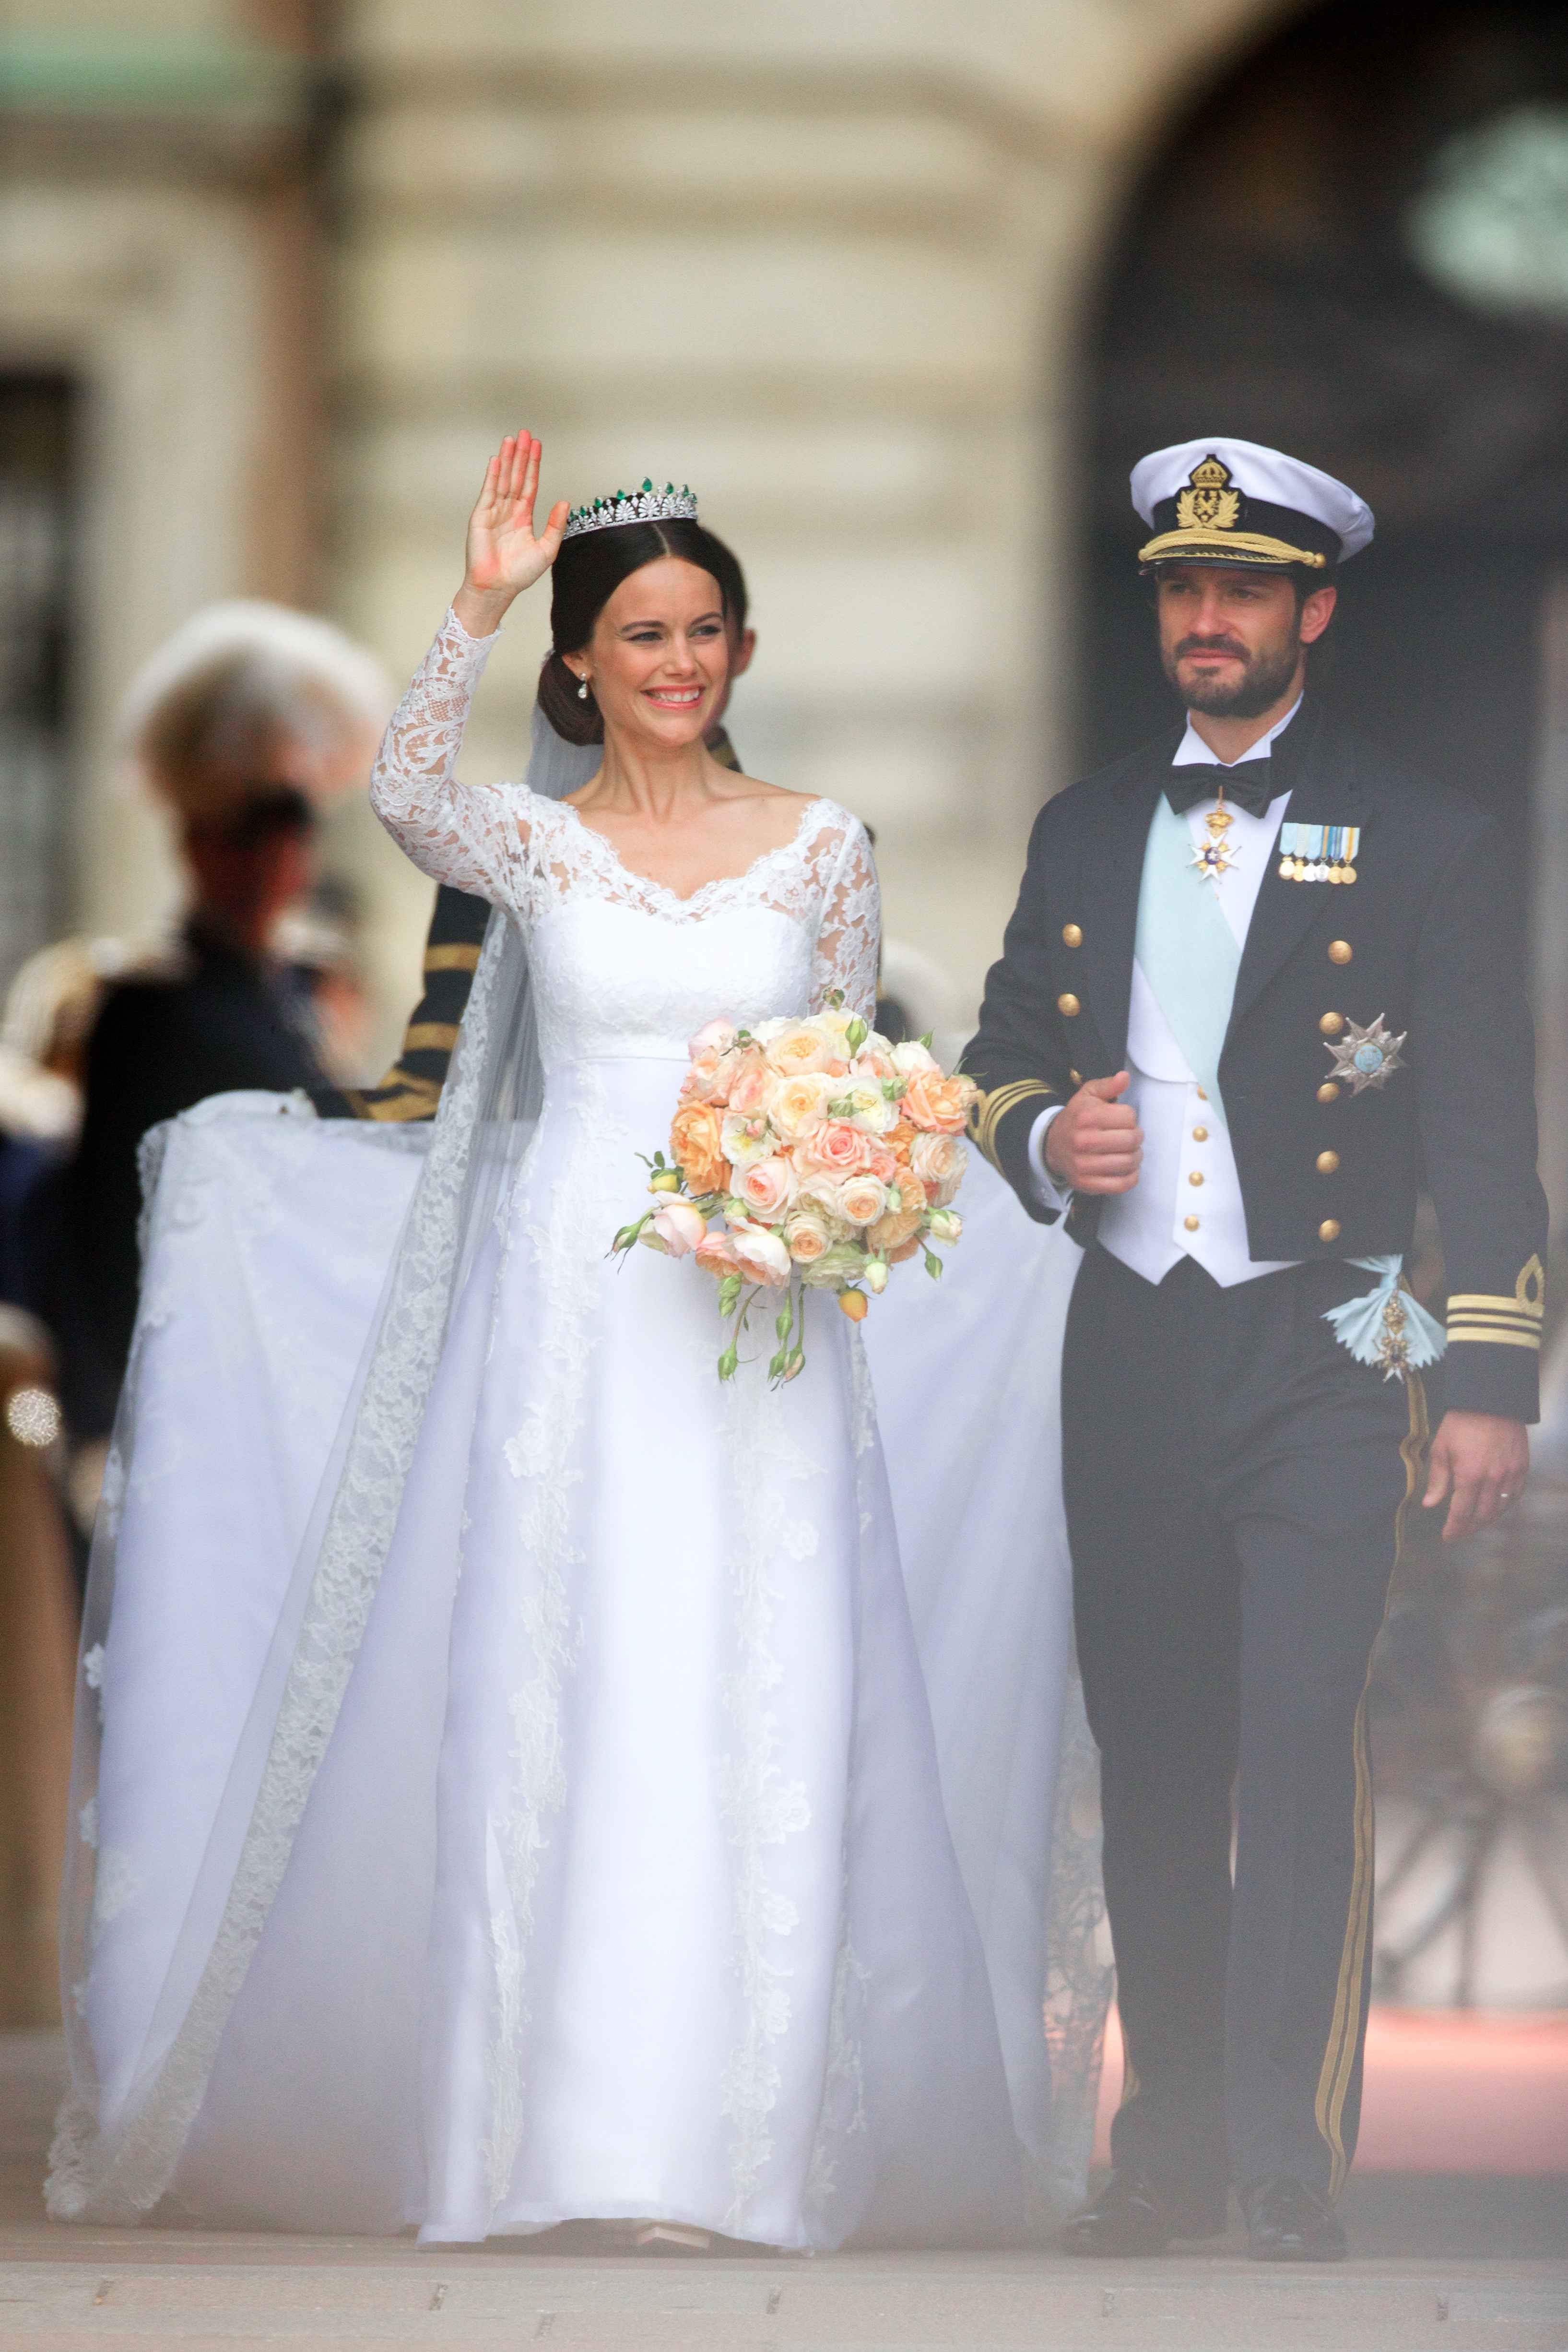 Most Iconic Royal Weddings A Choir Sang Version Of Joyful Based On Beethoven's Symphony No 9 As They Left The Church Harpersbazaar: Swedish Royal Wedding Dresses At Websimilar.org